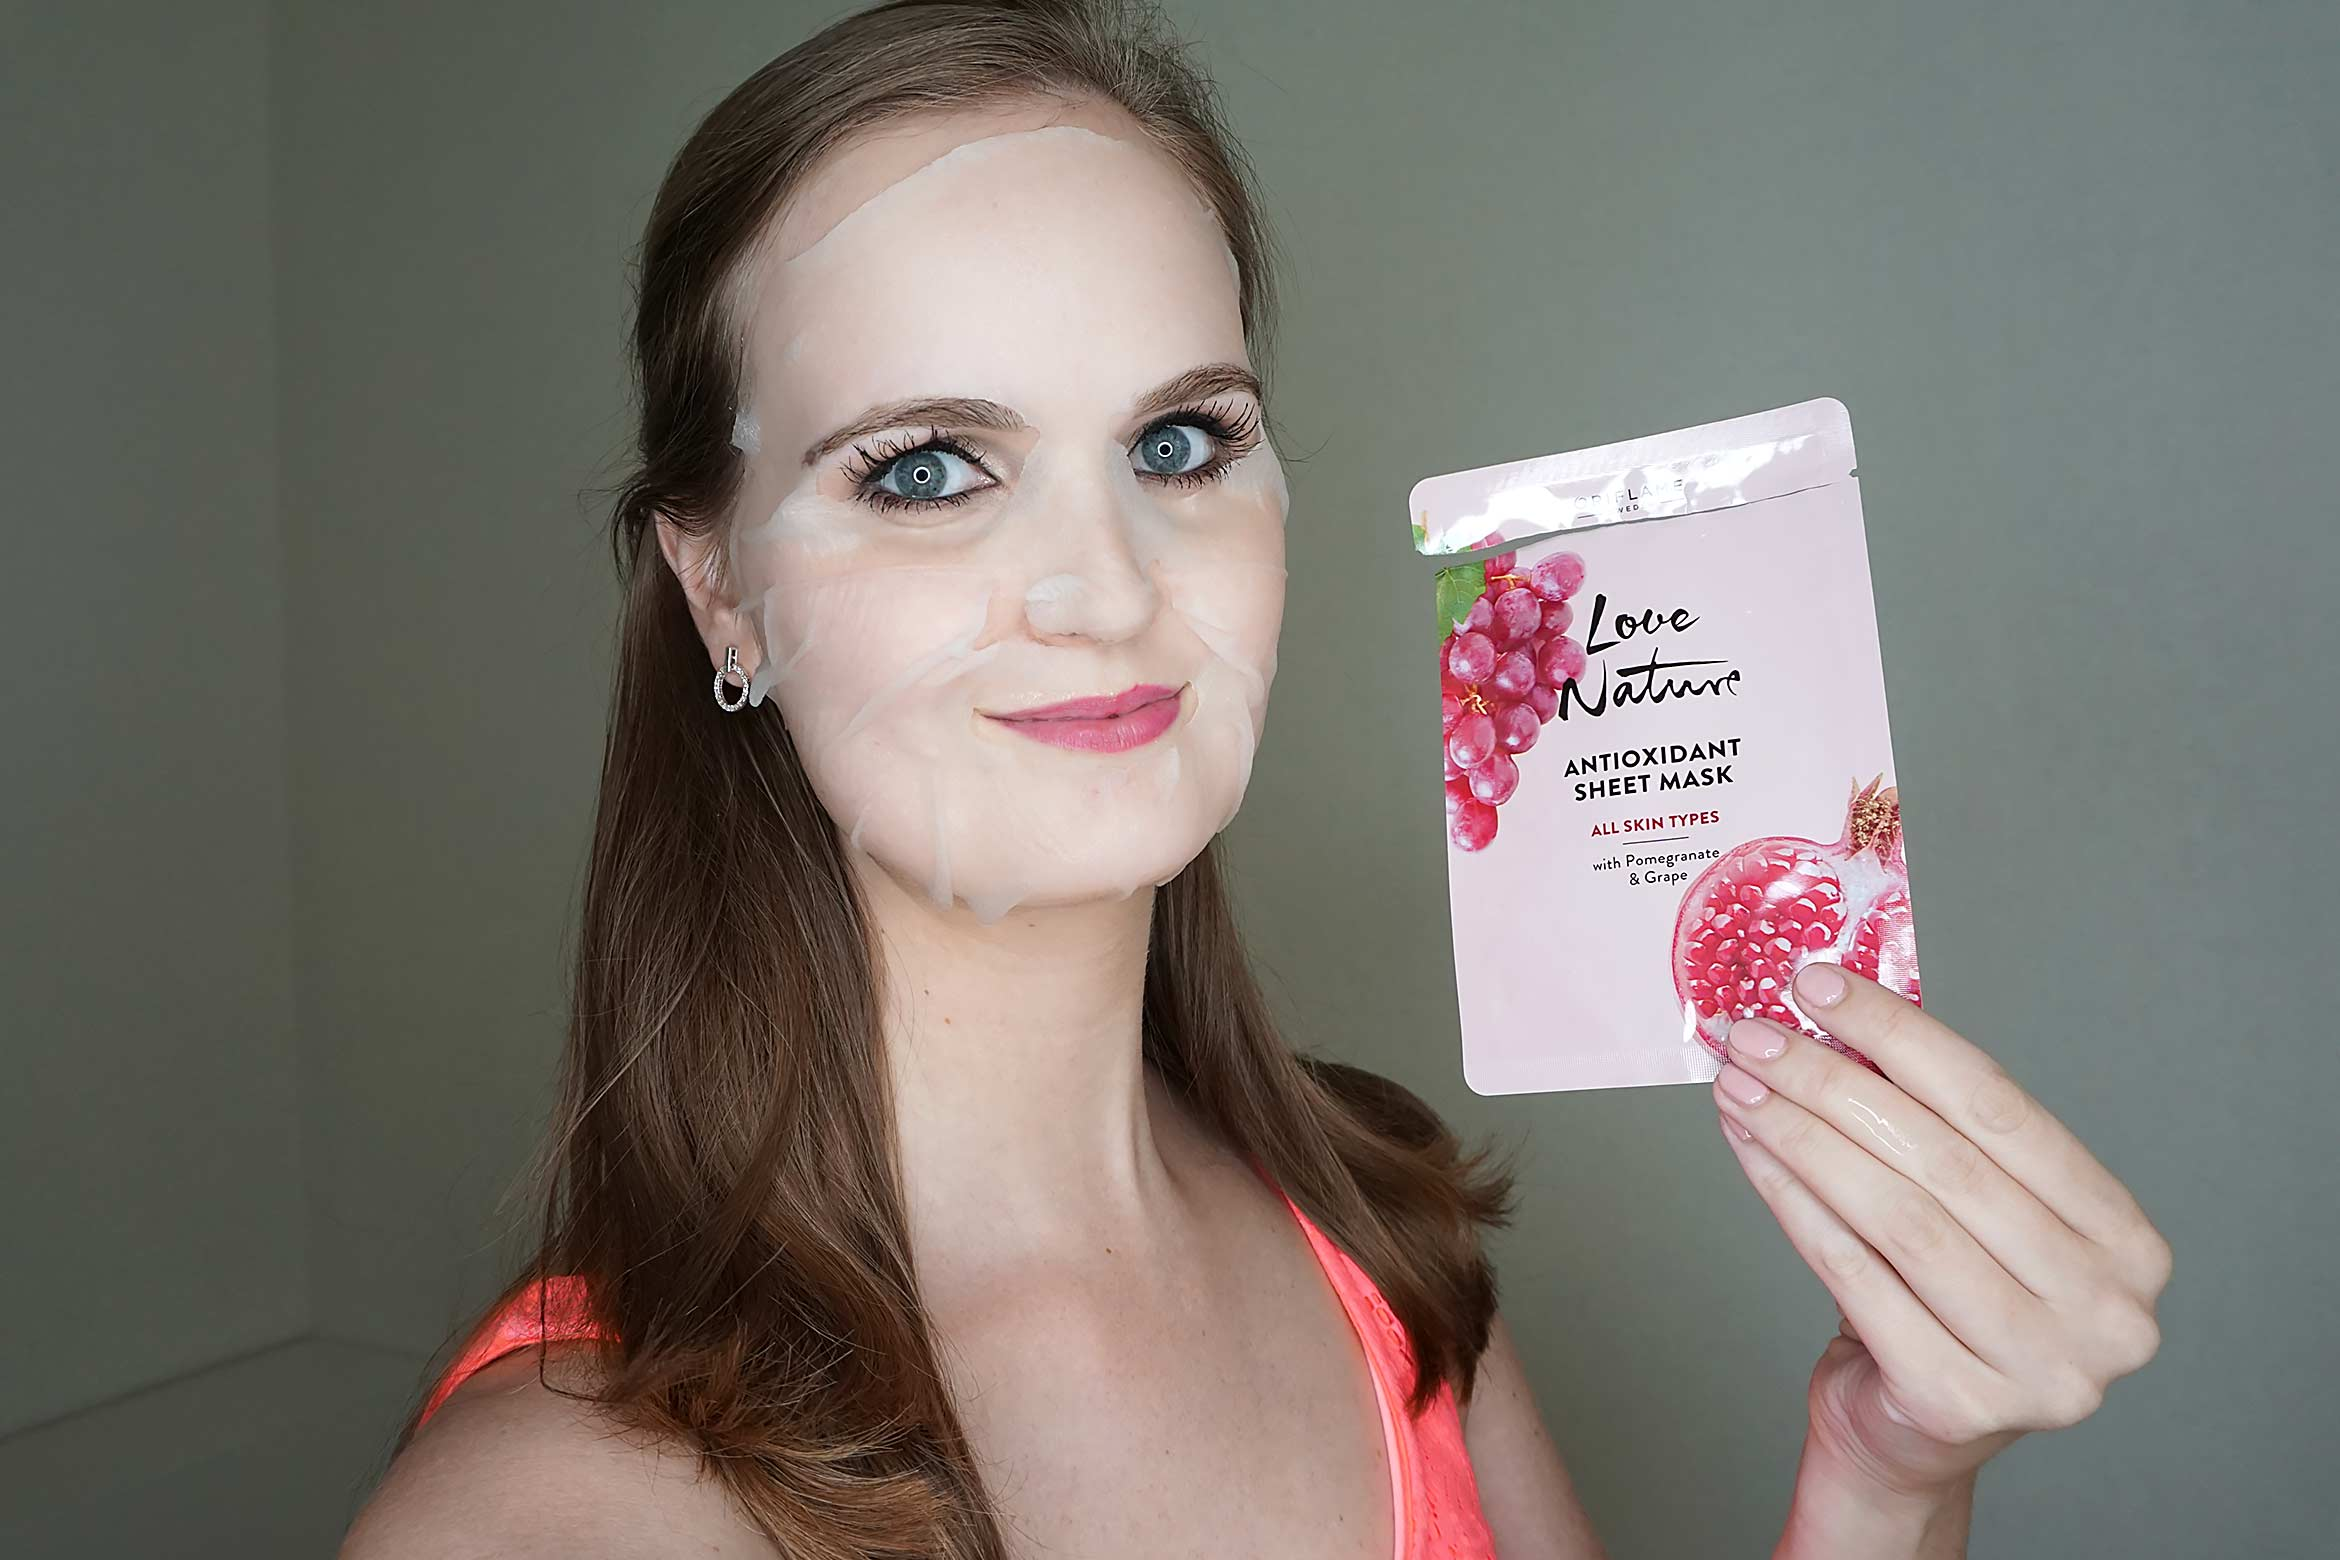 oriflame-love-nature-sheet-mask-review-4